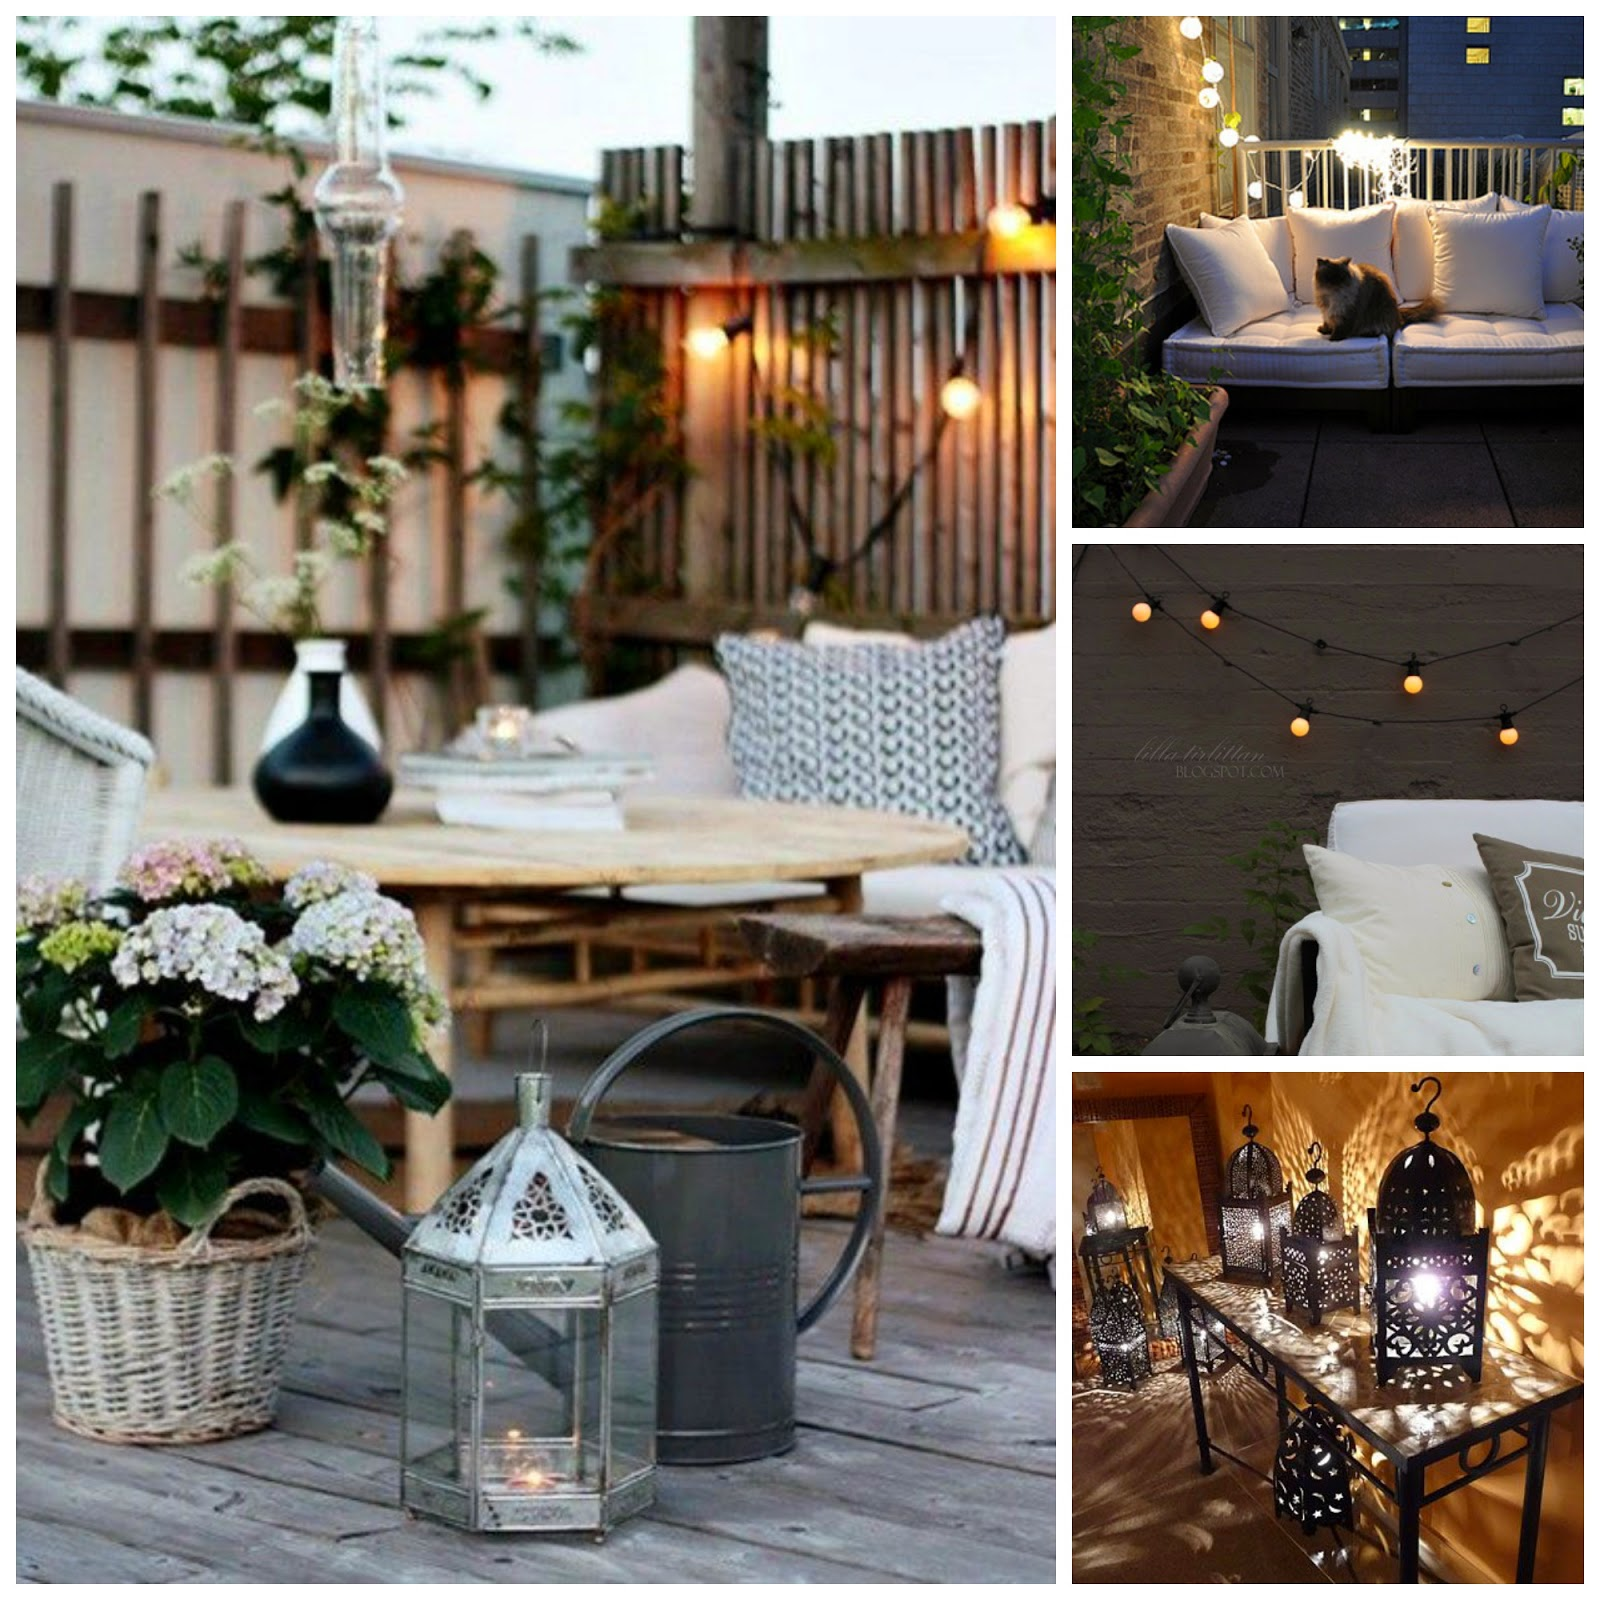 patio deck lighting ideas with balcony design | Magnolia Styles: 5 Steps to Decorate Your Small Balcony or ...